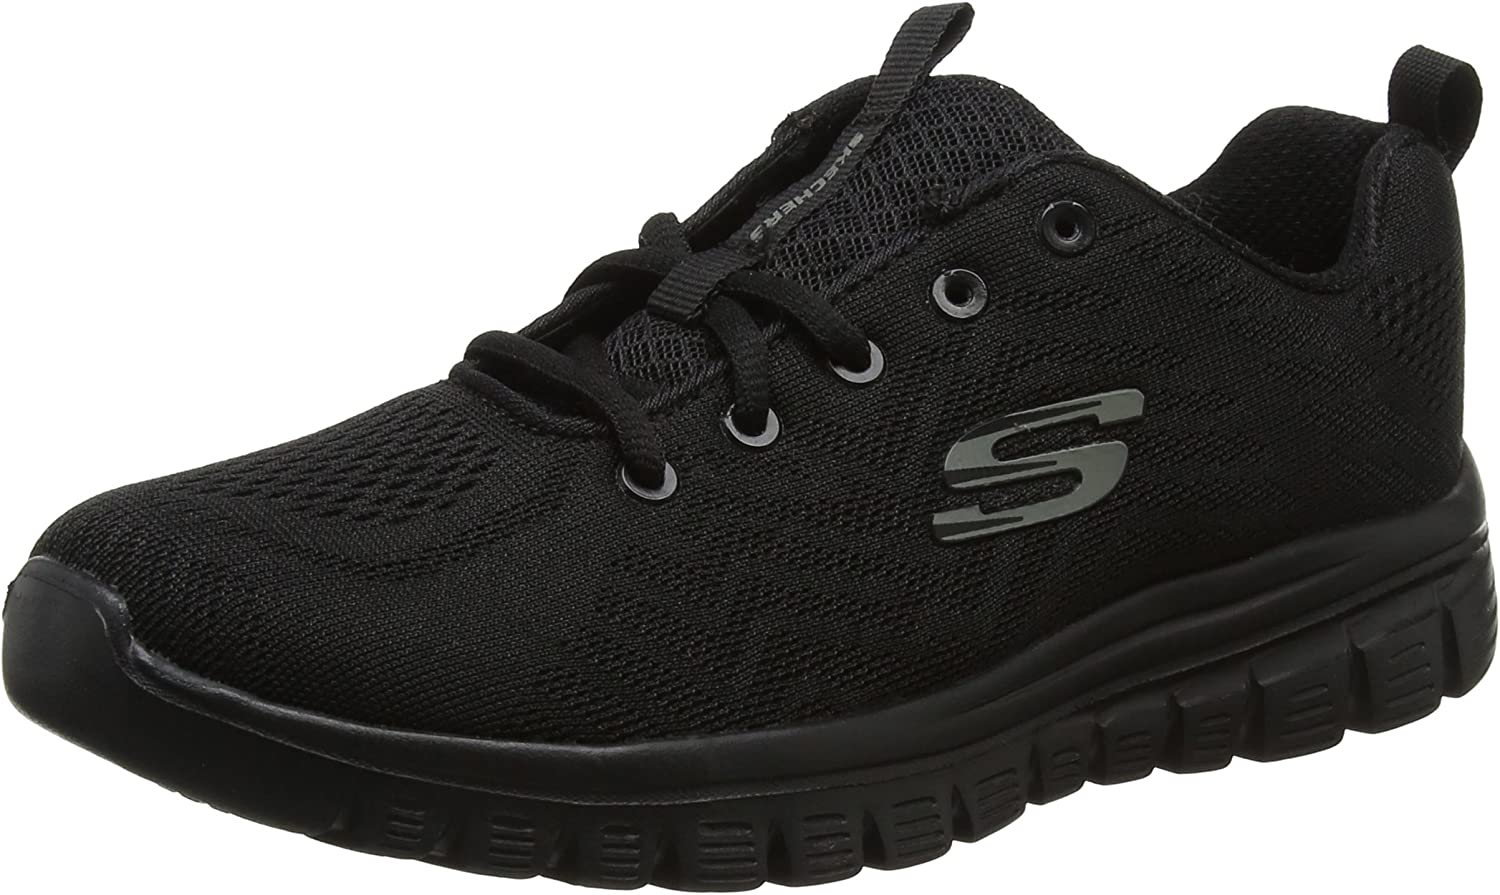 Skechers Women's Graceful-Get Connected shoes